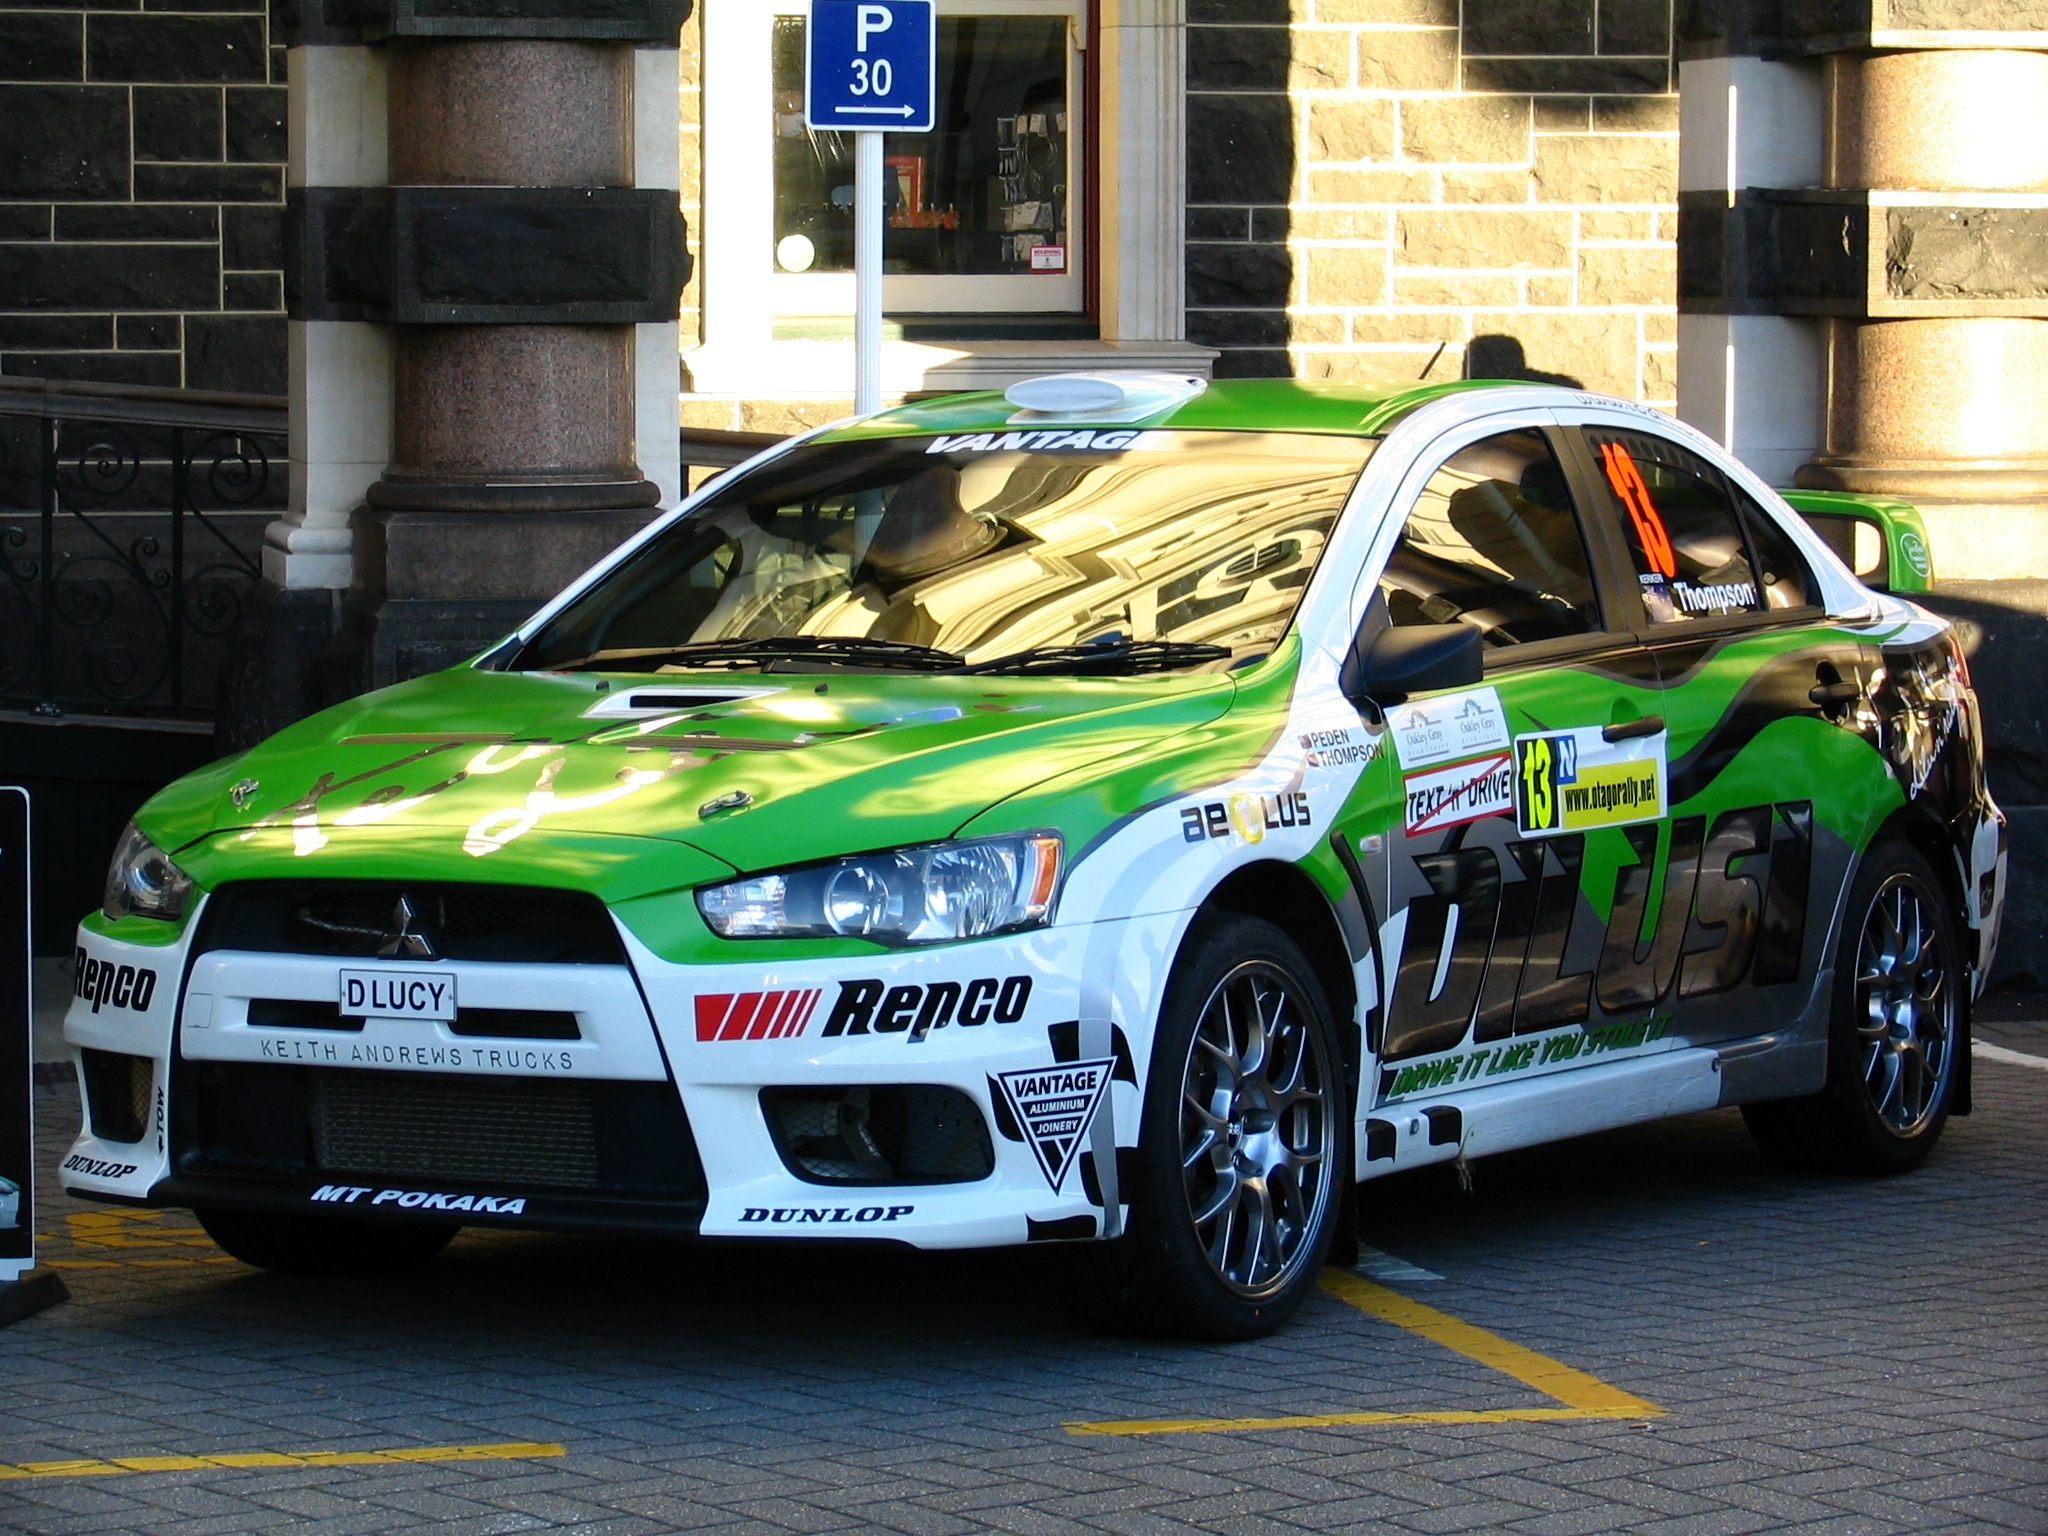 File:Mitsubishi Lancer EVO 10 Rally of Otago 2010.JPG - Wikimedia ...